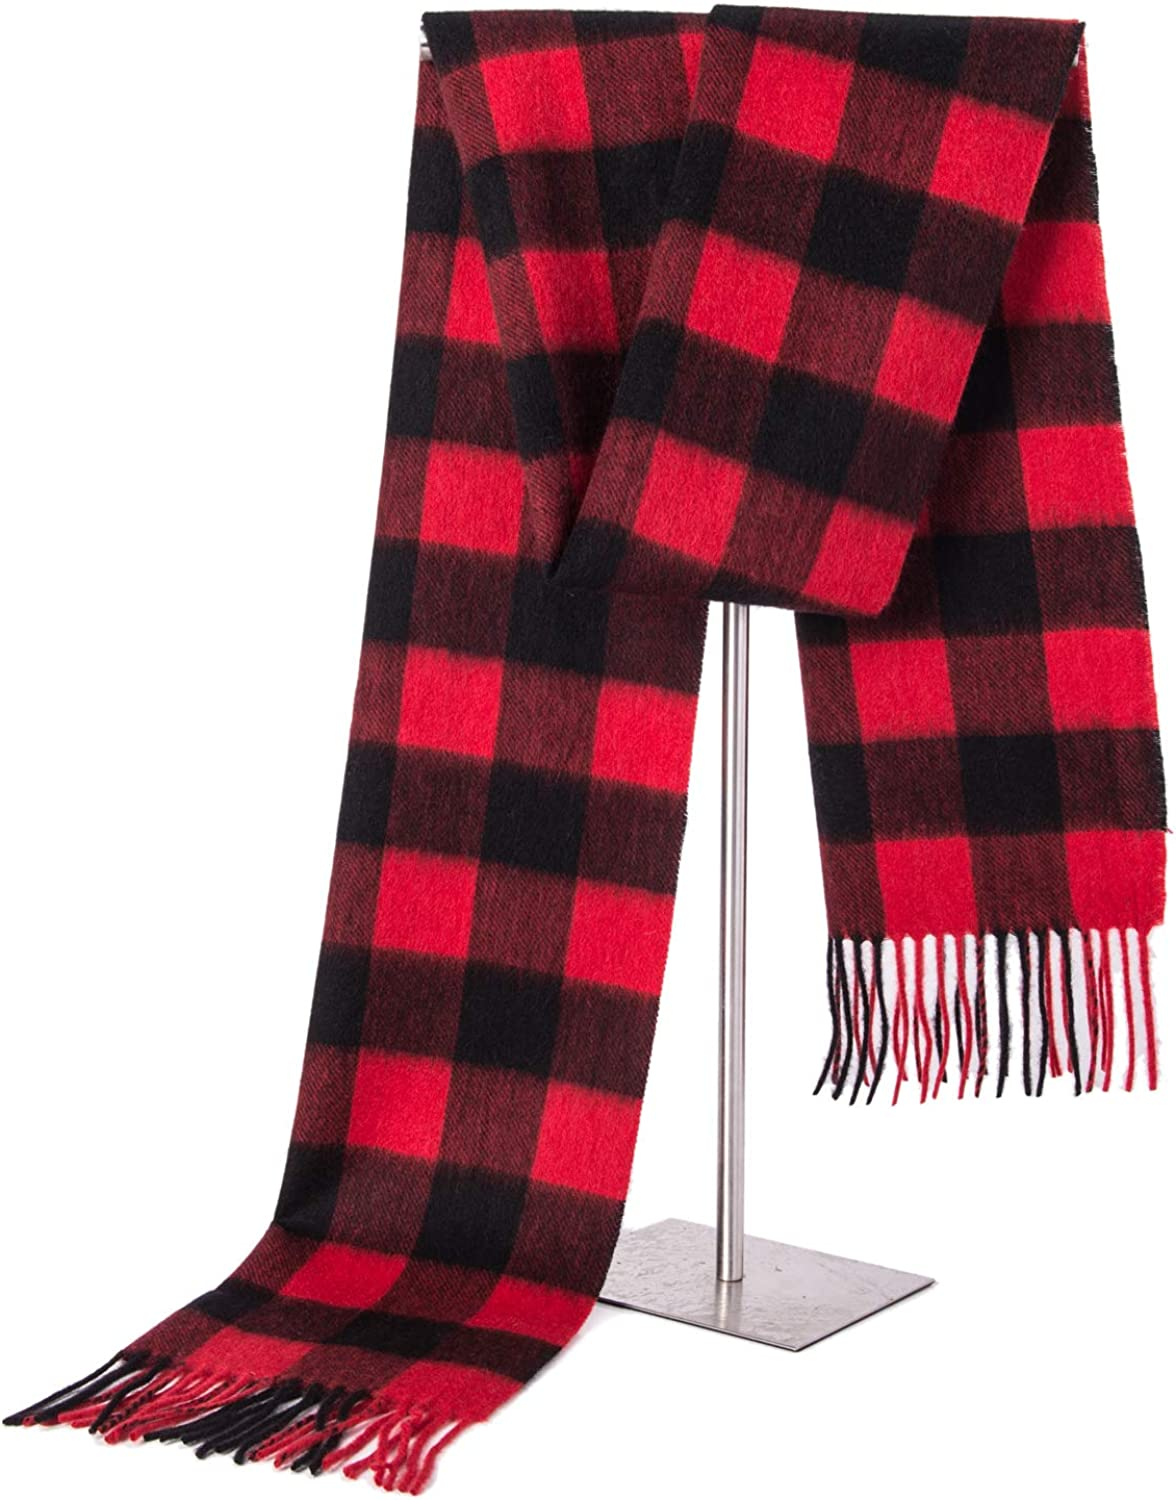 100% Cashmere Scarf, Classic Check Style for Women